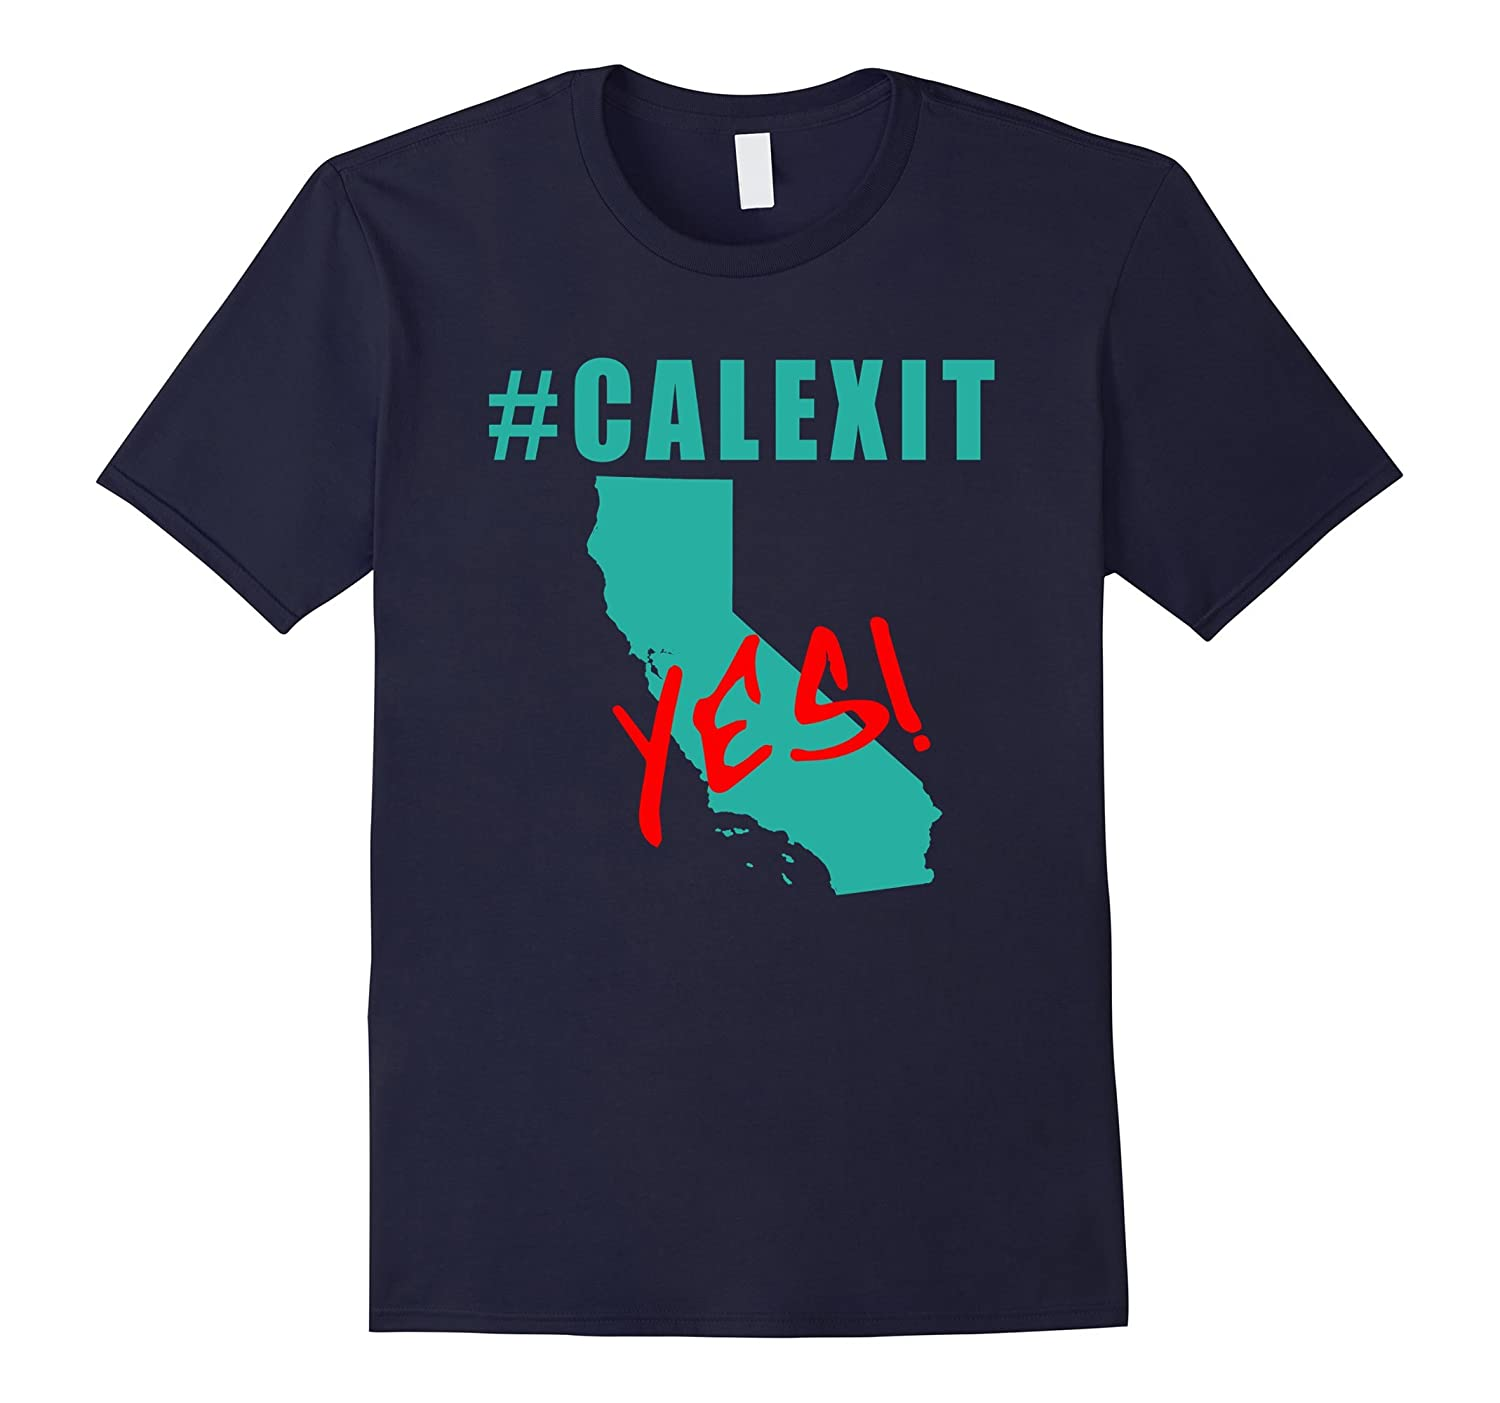 #CALEXIT YES! T-shirt California Secede-CL